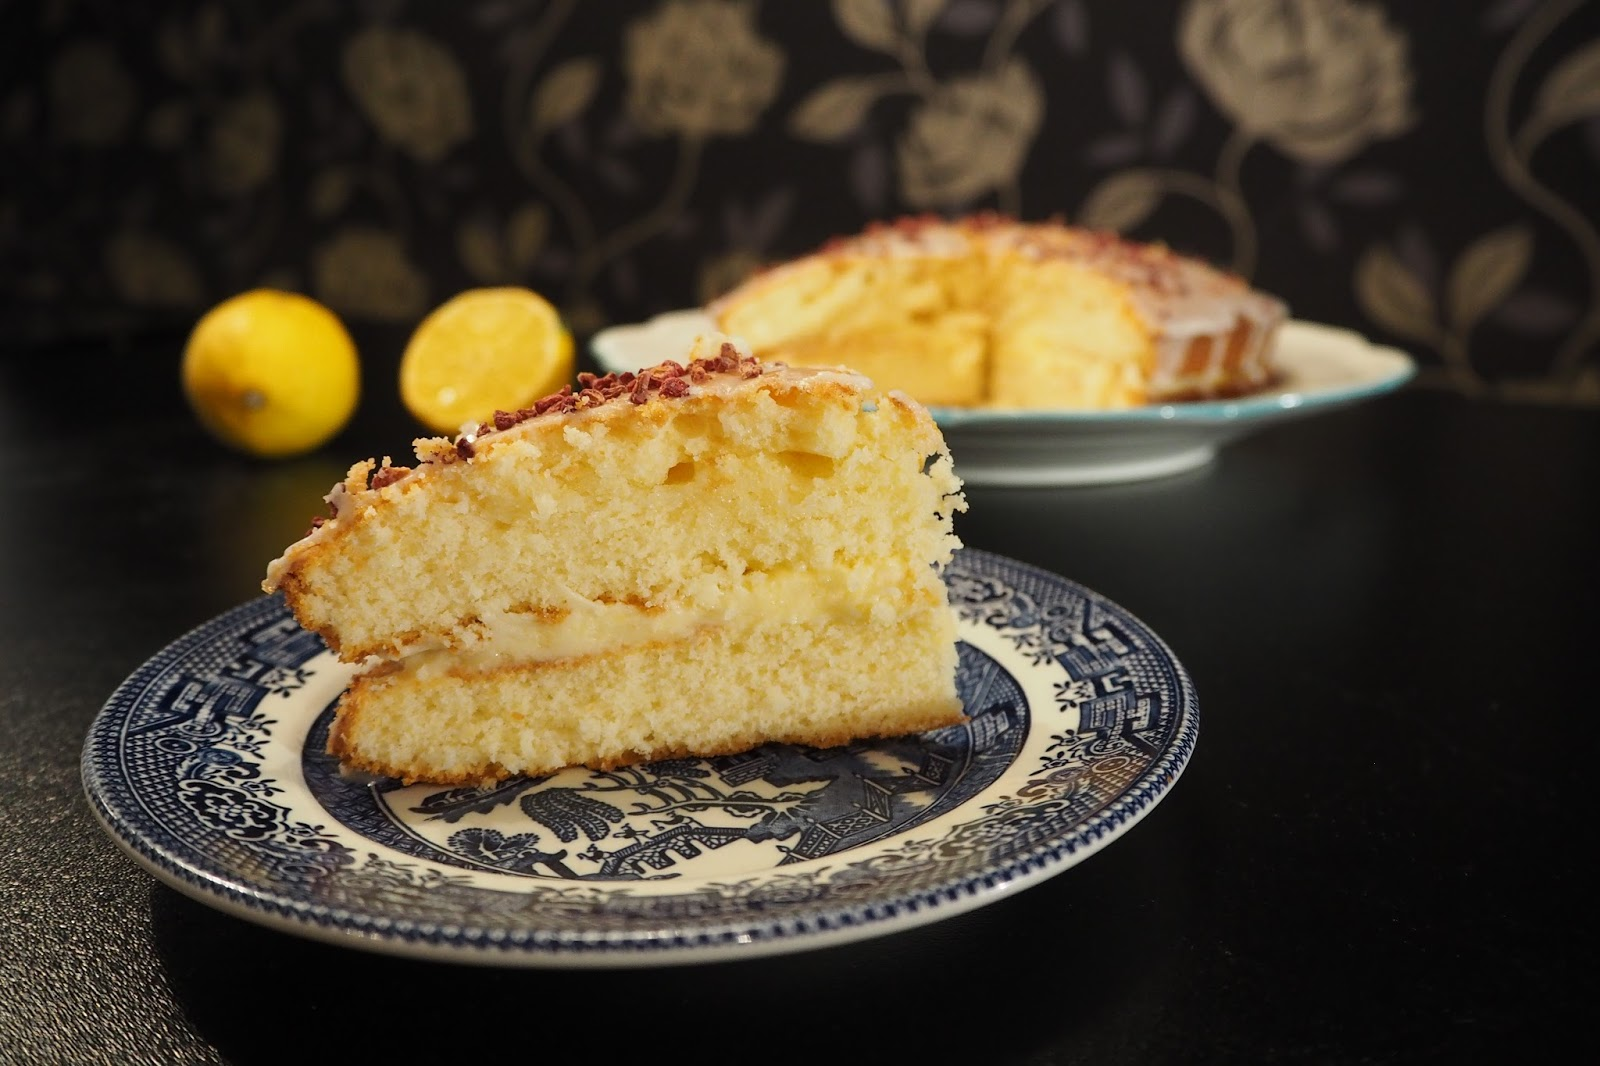 slice of Homemade lemon drizzle cake